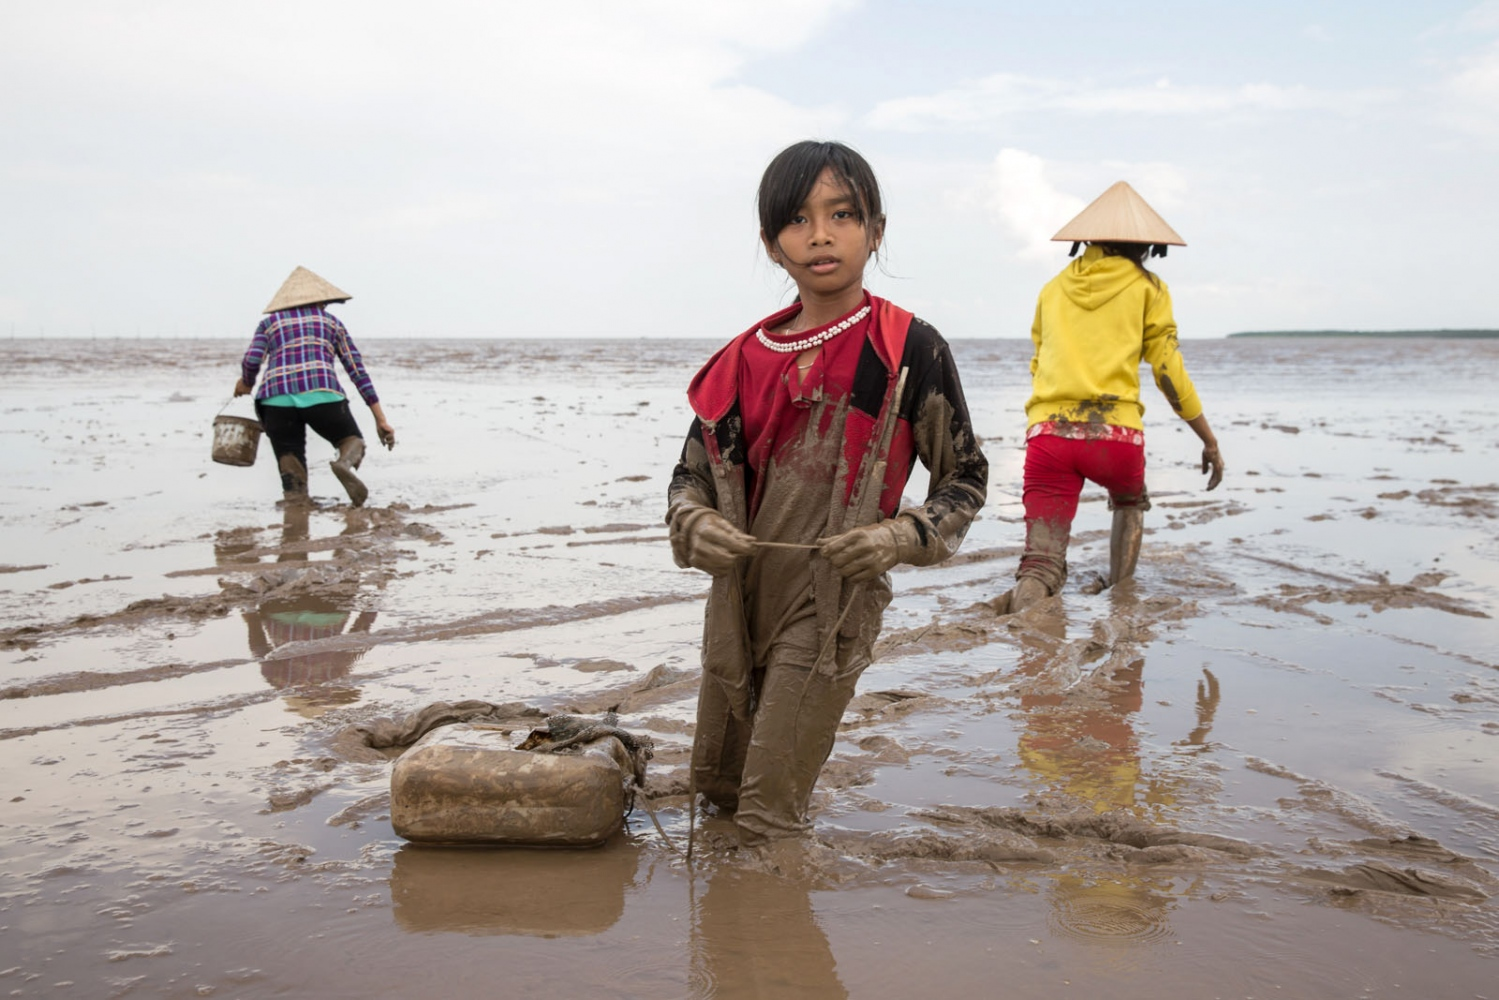 A young girl helps her family collect snails during low-tide in Southern Soc Trang Province. These mangroves were destroyed completely by bombing during the Vietnam War but over the last 25 years were able to grow back naturally, finally being protected and expanded by Government initiatives. Now, over 20 families come to the beach daily to collect snails and other fish that returned with the healthy mangrove eco-system.